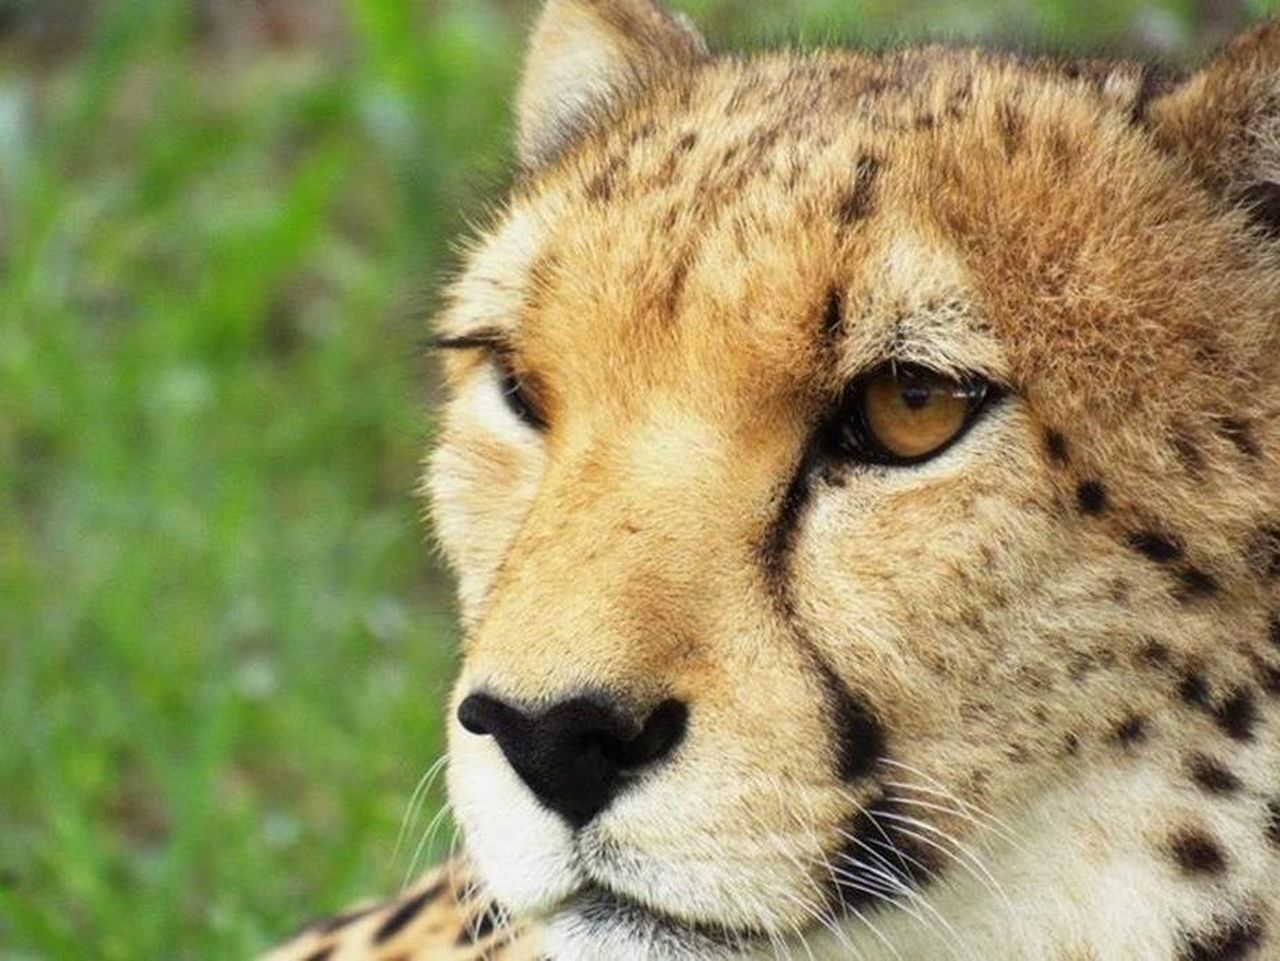 Africa Africa Wildlife African Wildlife Animal Wildlife Animals In The Wild Carnivora Cheetah Close-up Day Mammal Nature One Animal Wildlife & Nature